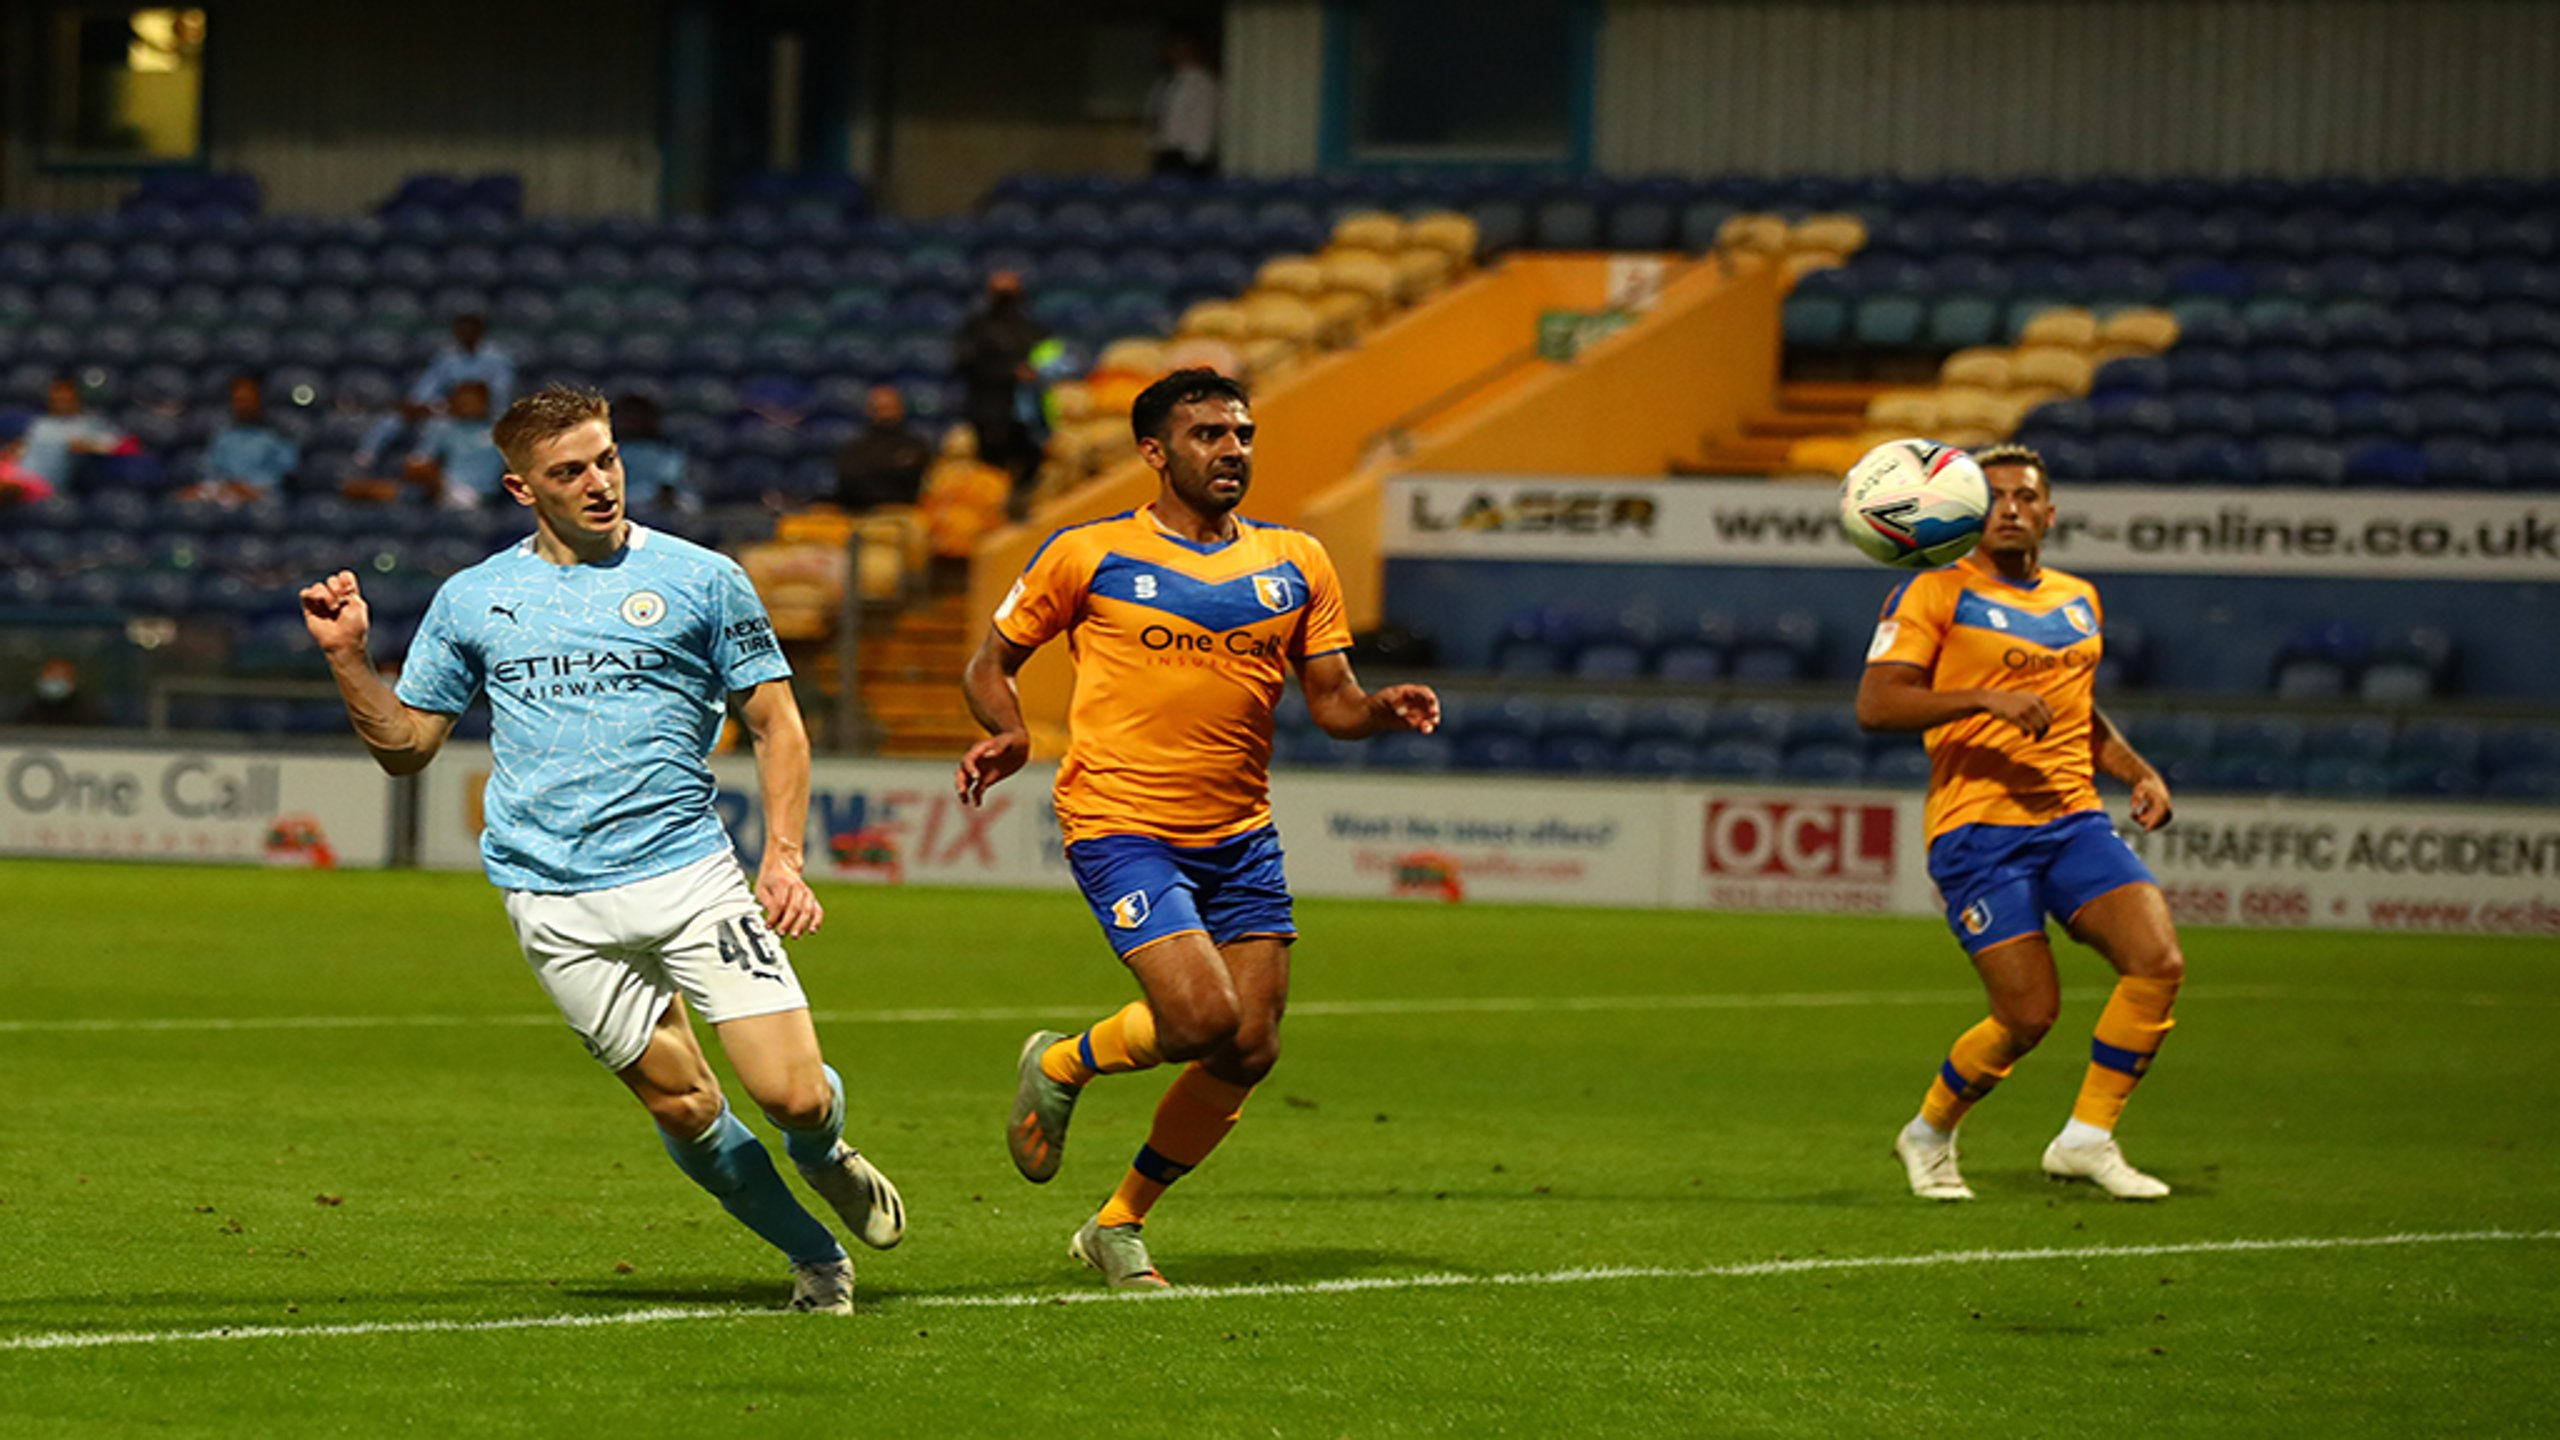 Delap at the double as Under-21s make flying start